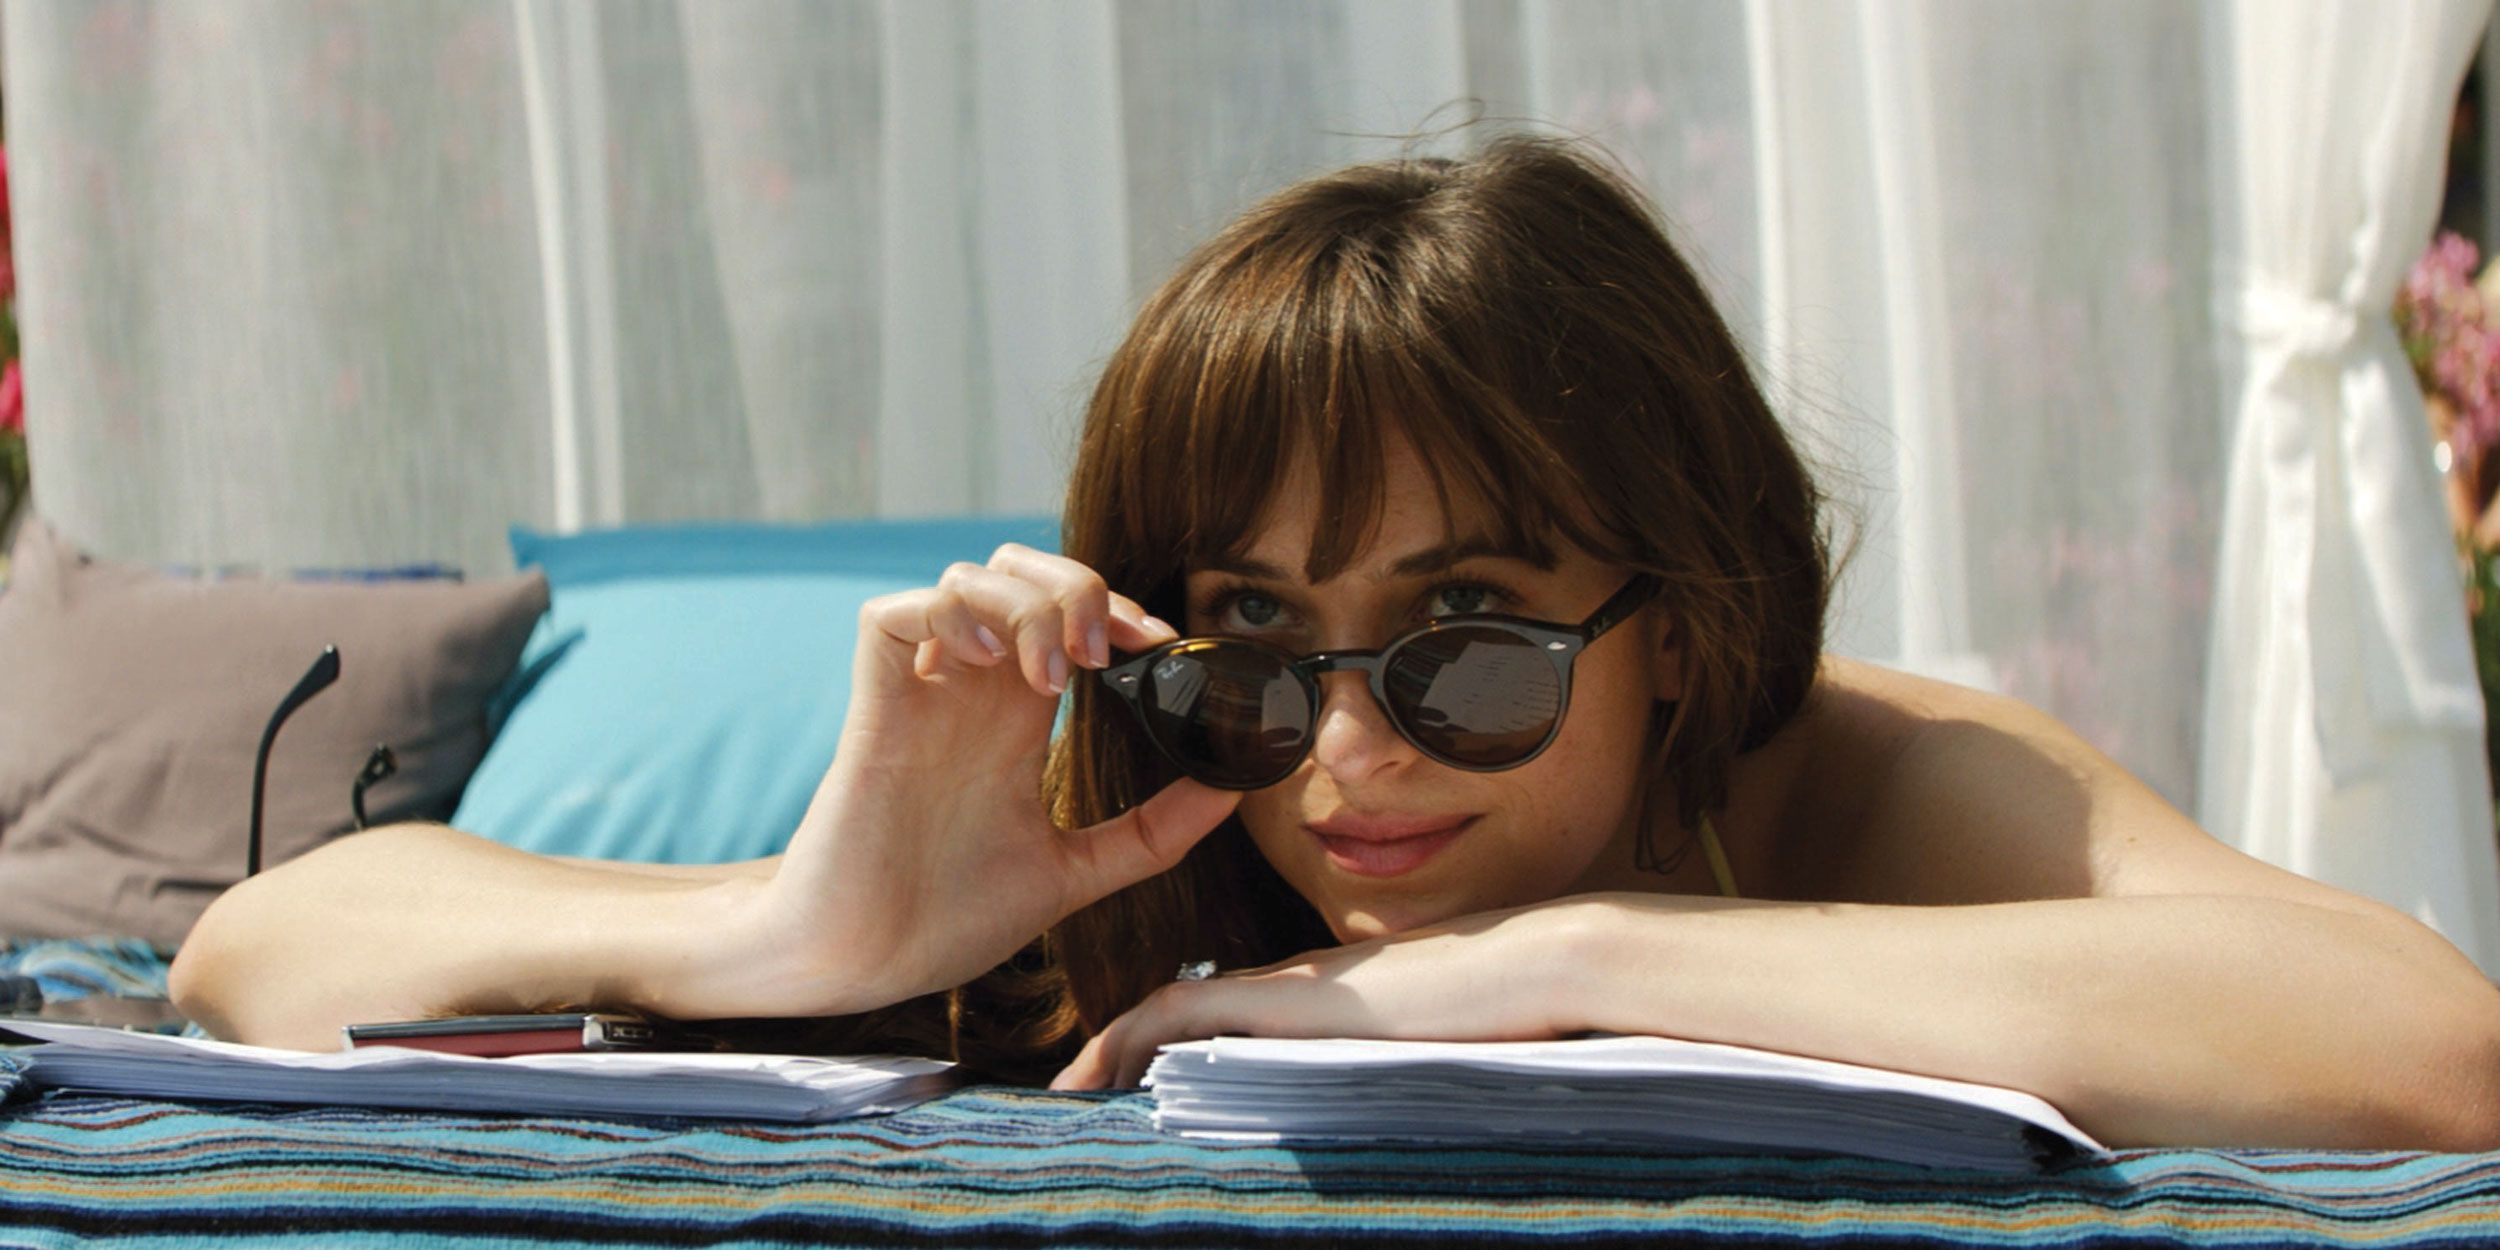 20 Fascinating Facts About How Dakota Johnson Got Her Body Ready for 'Fifty Shades Freed'